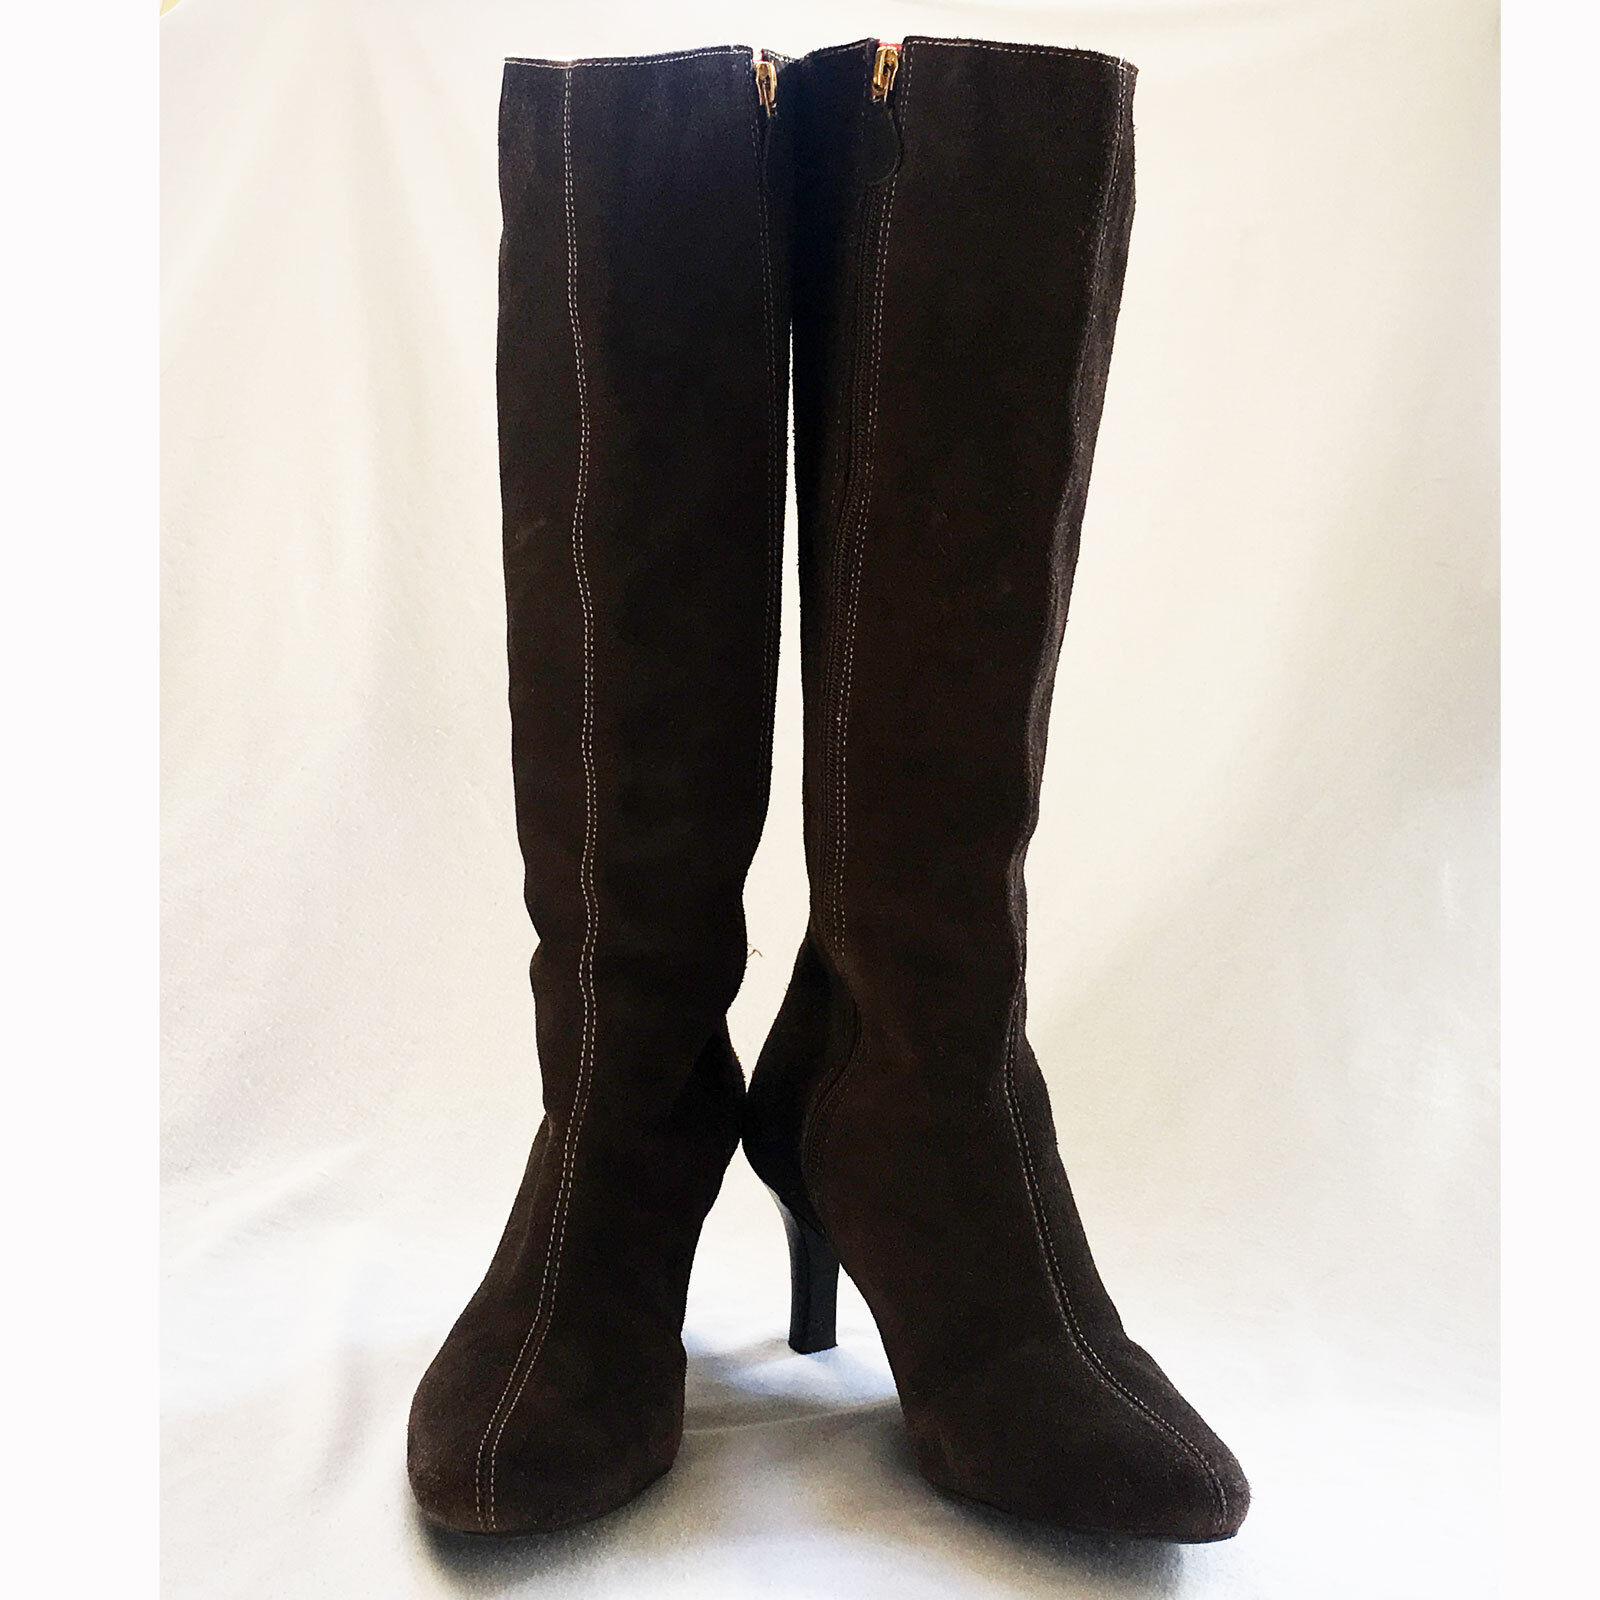 Lilly Pulitzer     Brown Suede Boots w  gold Logo Size 8M 829c0c